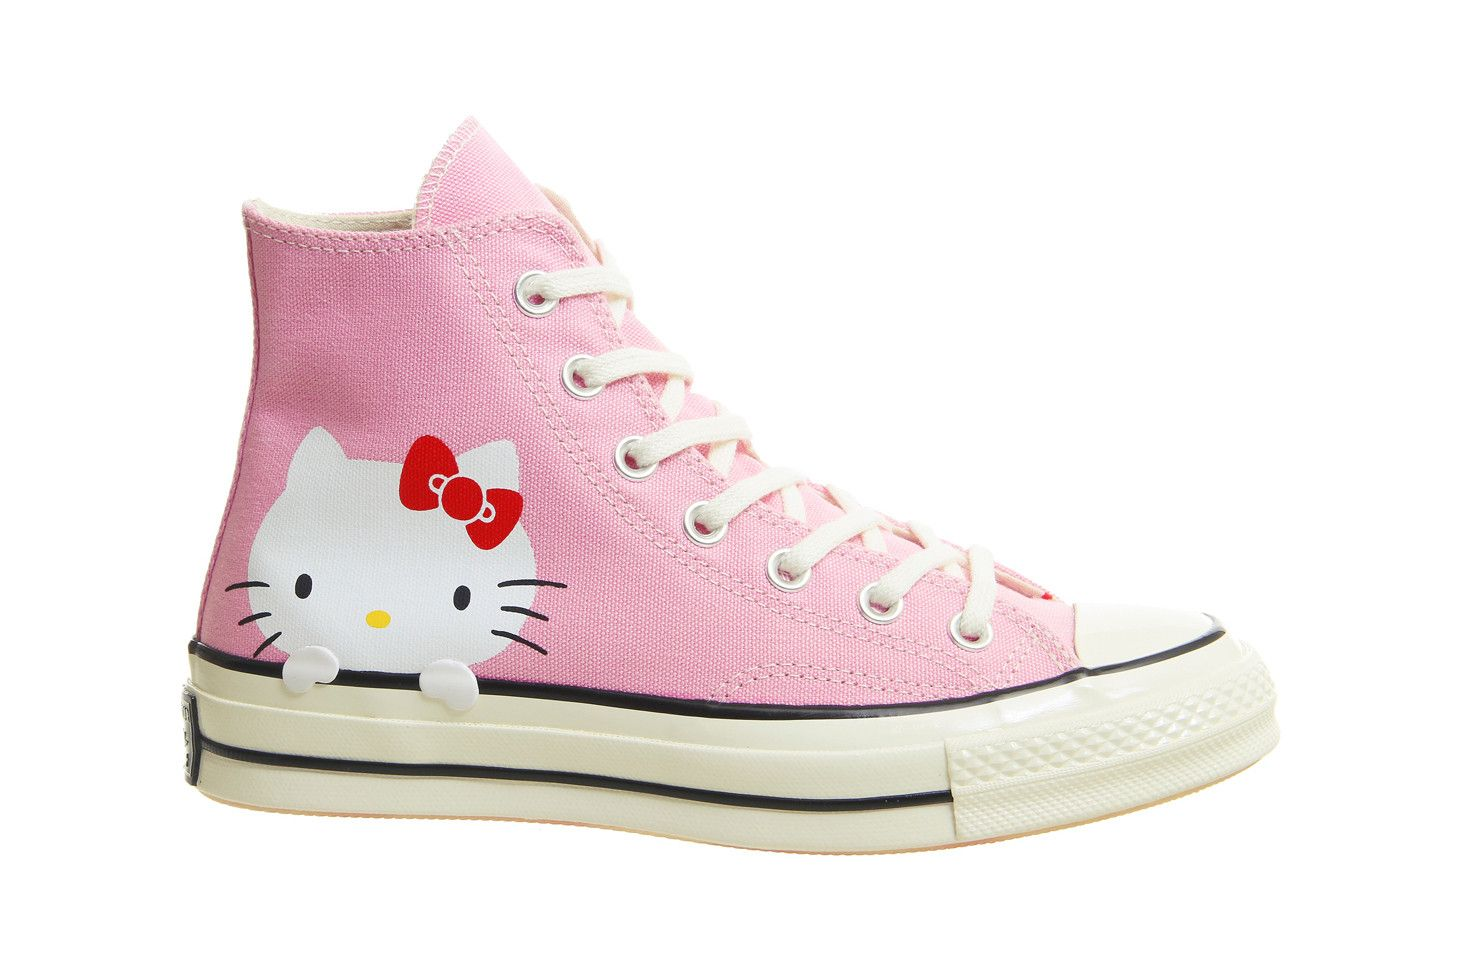 quality design 0d9d1 aa92b Hello Kitty x Converse Chuck Taylor All Star Pink Sanrio Women s Sneakers